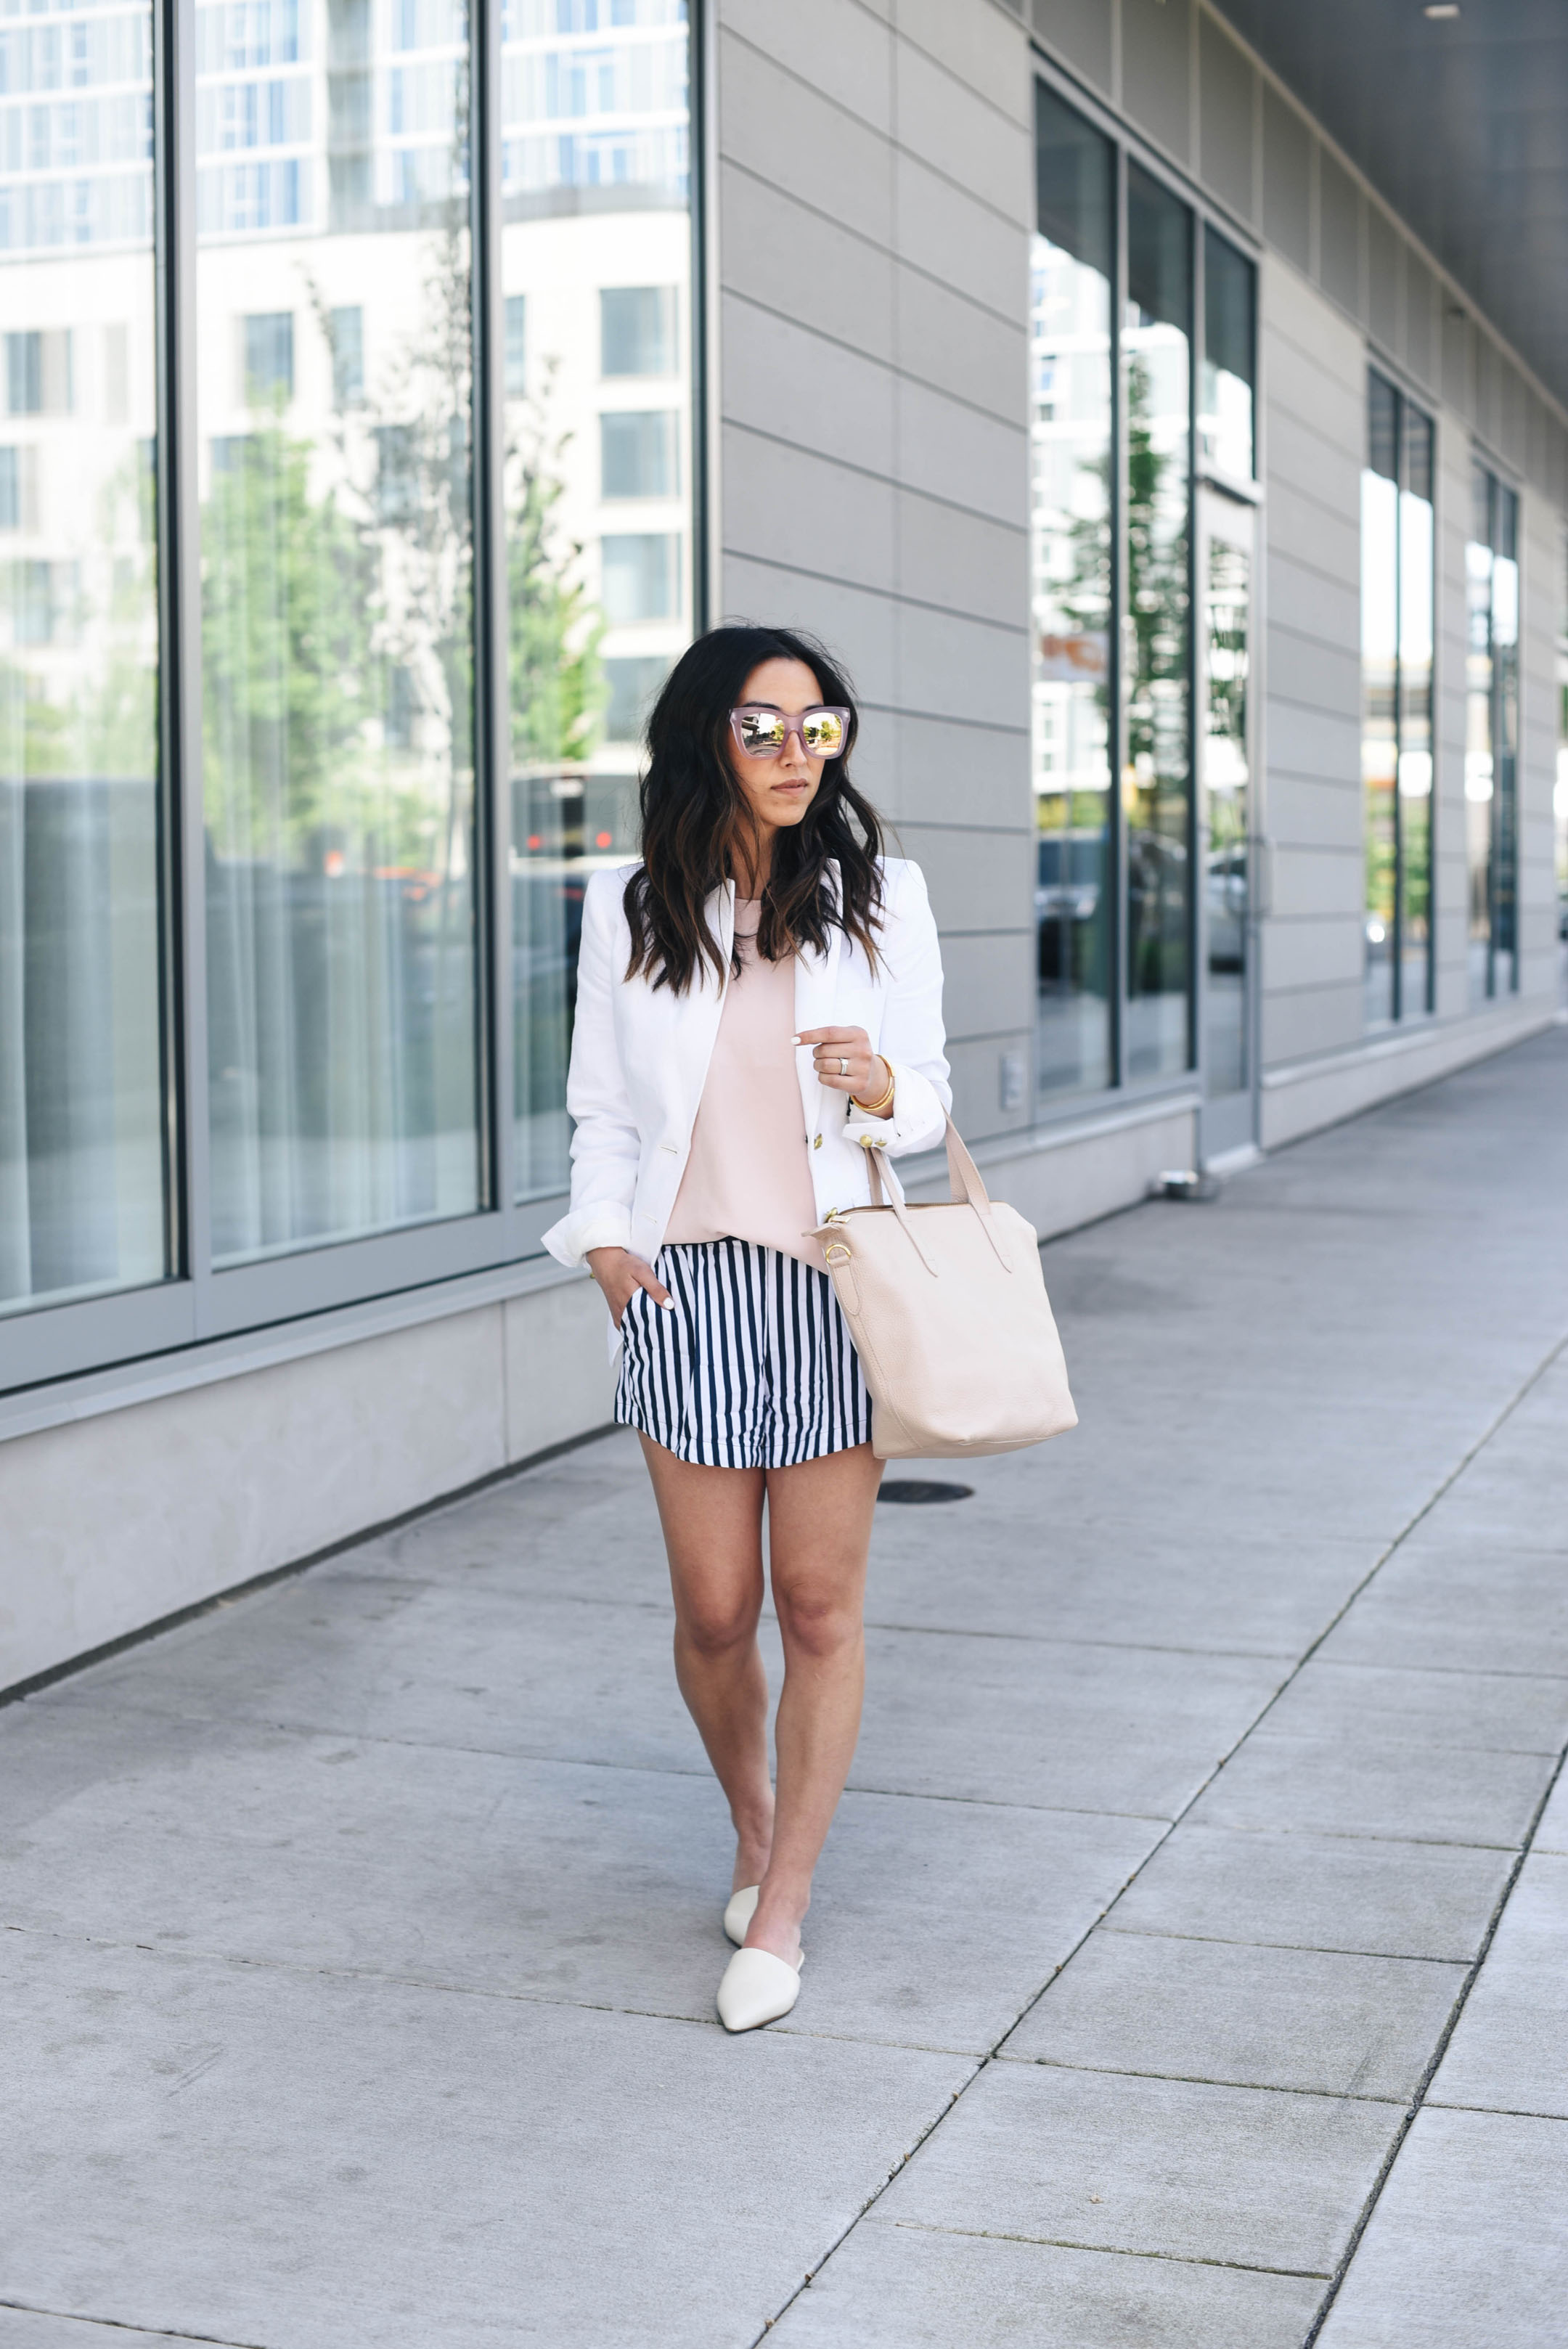 How to style a white blazer in the summer